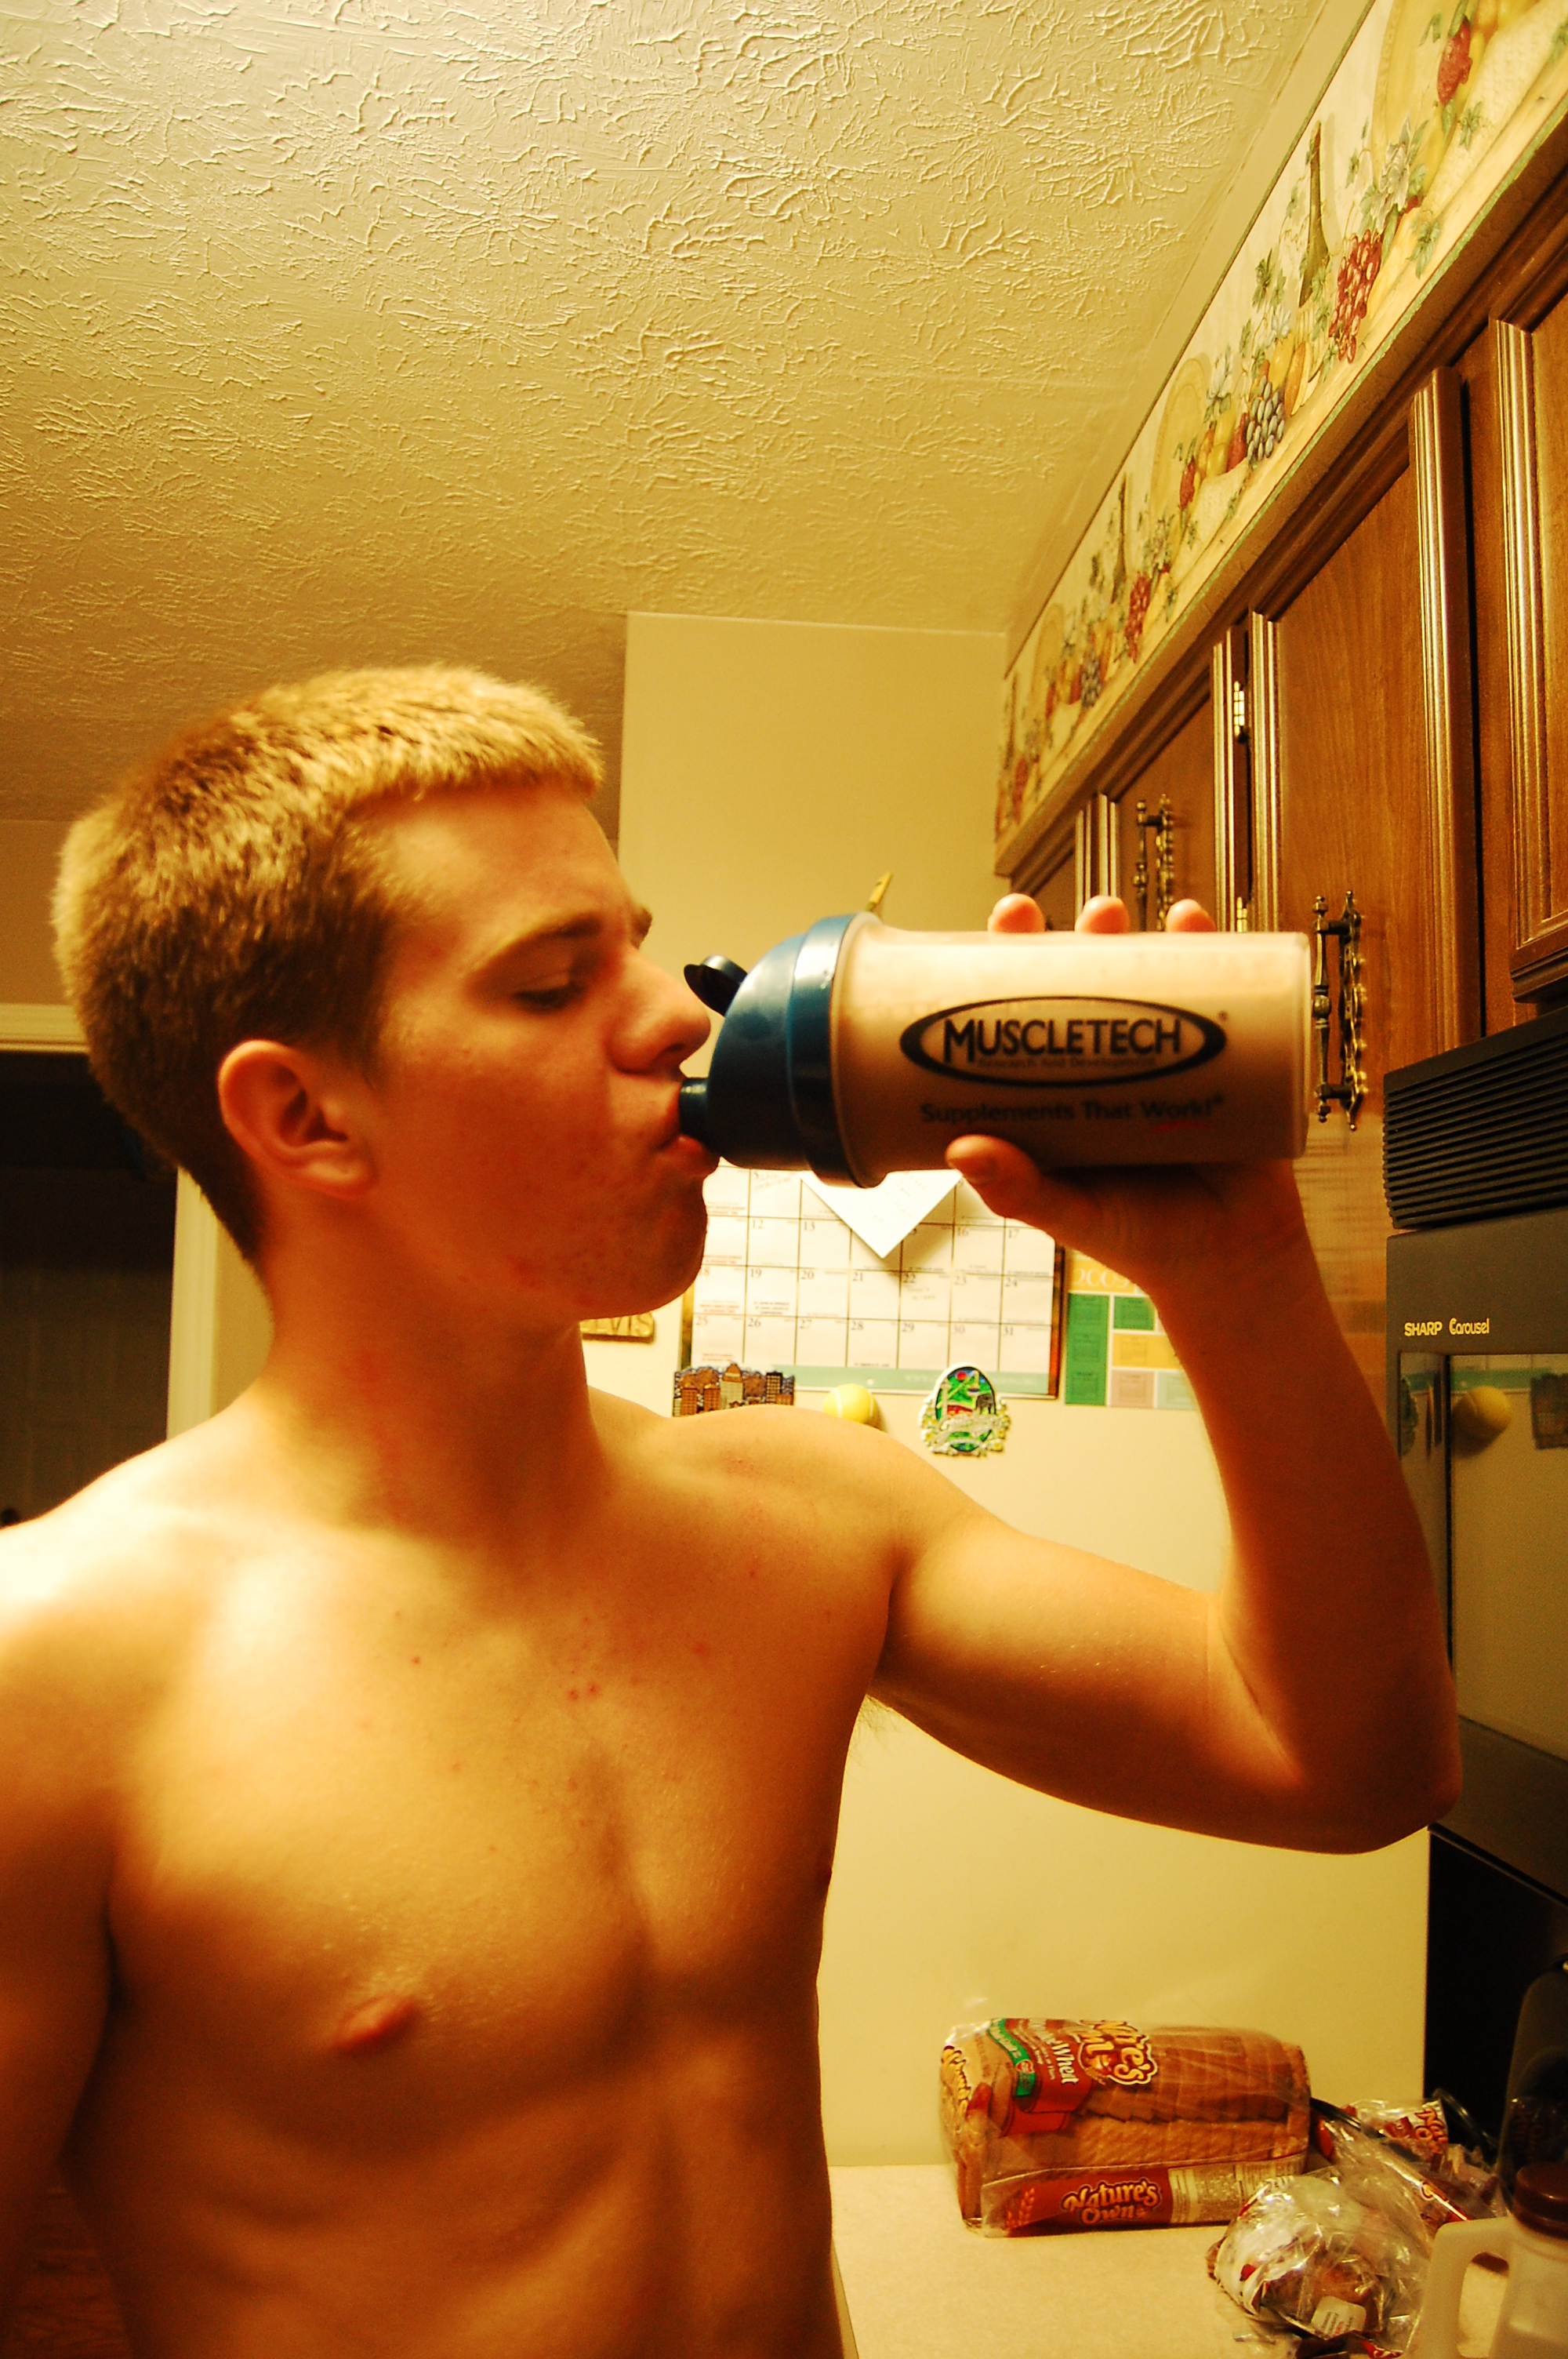 Protein shakes contain amino acids, which aids mental performance and promotes fat loss.